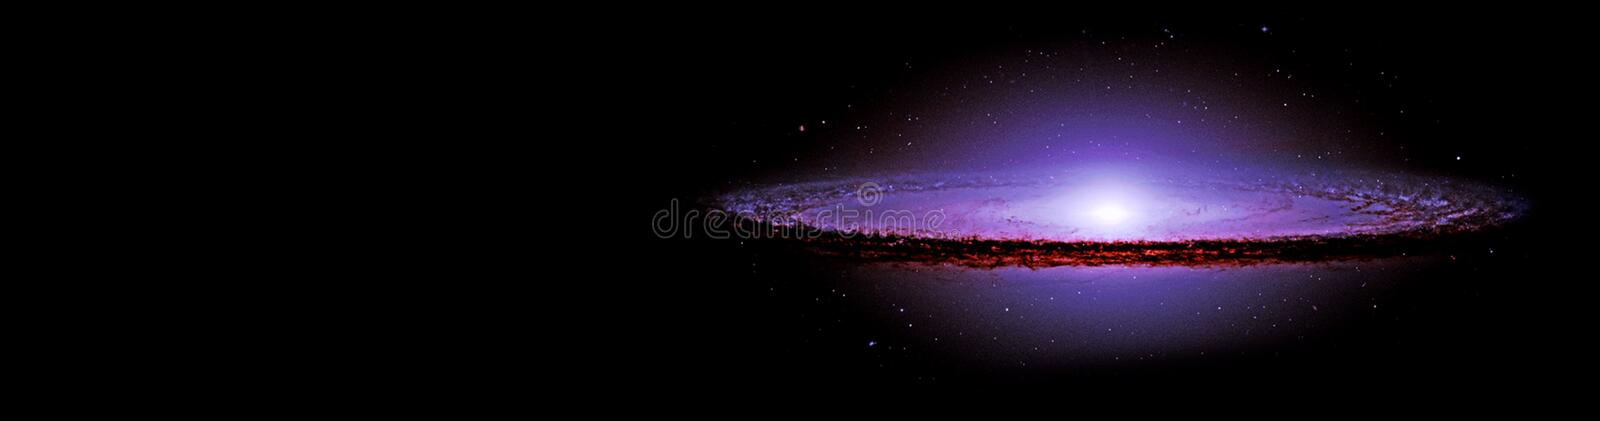 Planets and galaxy, science fiction wallpaper. Beauty of deep space. Billions of galaxy in the universe Cosmic art background stock photography